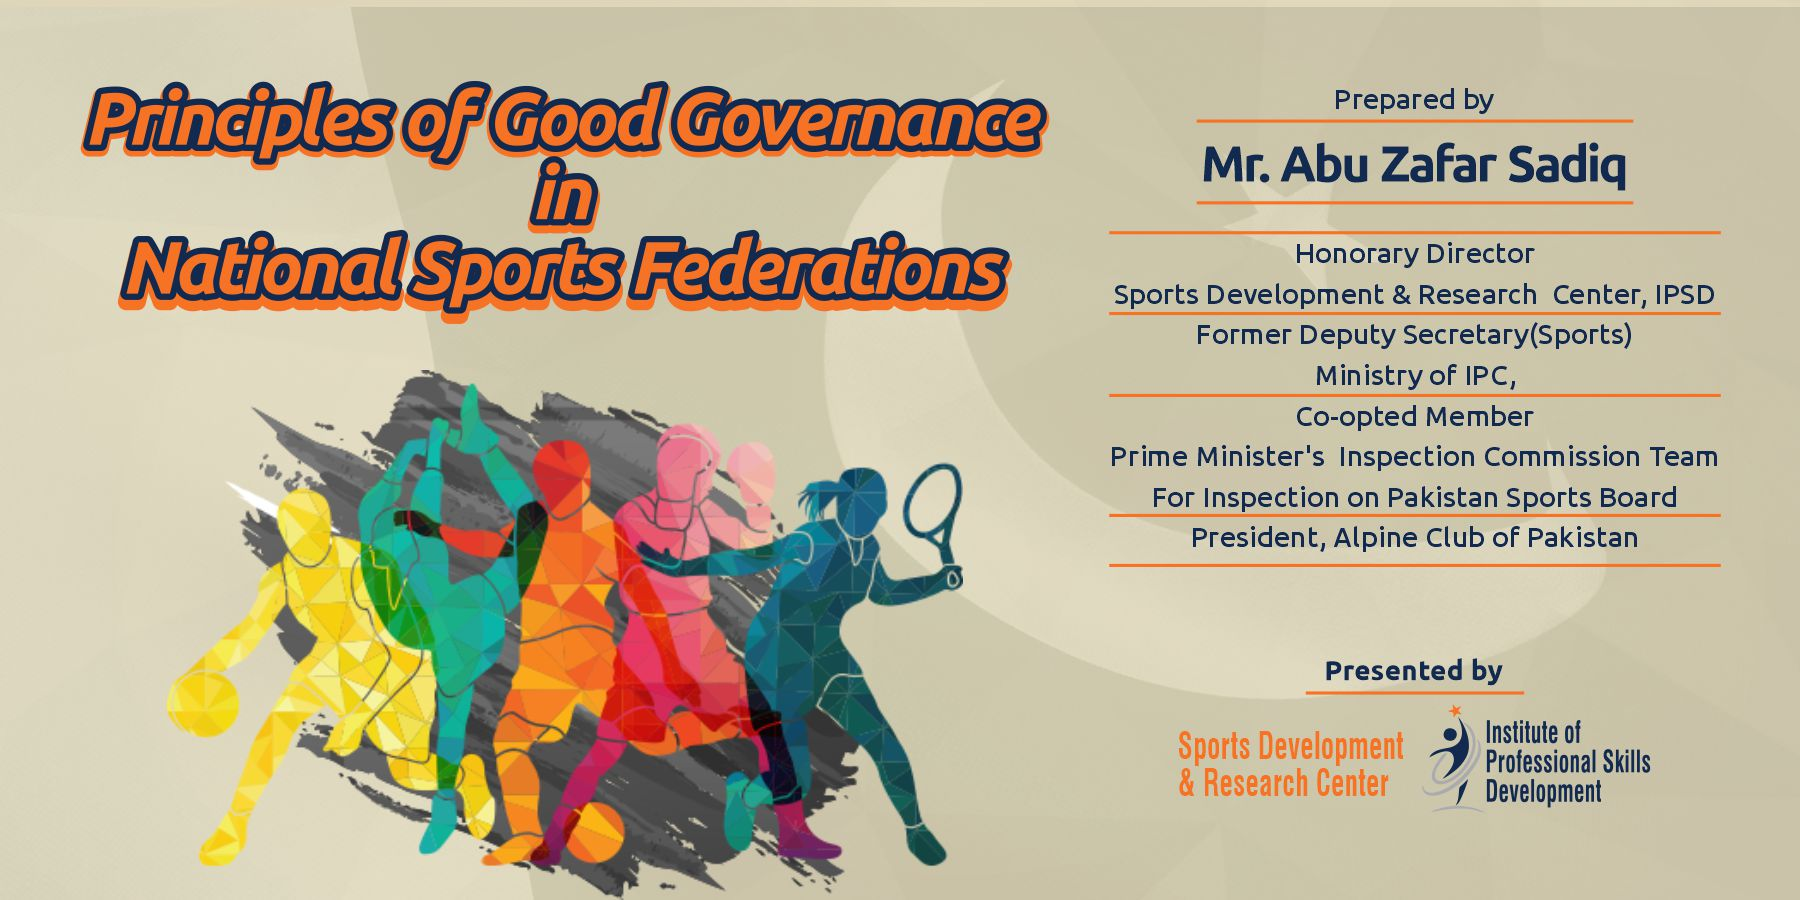 Principles of Good Governance in National Sports Federations